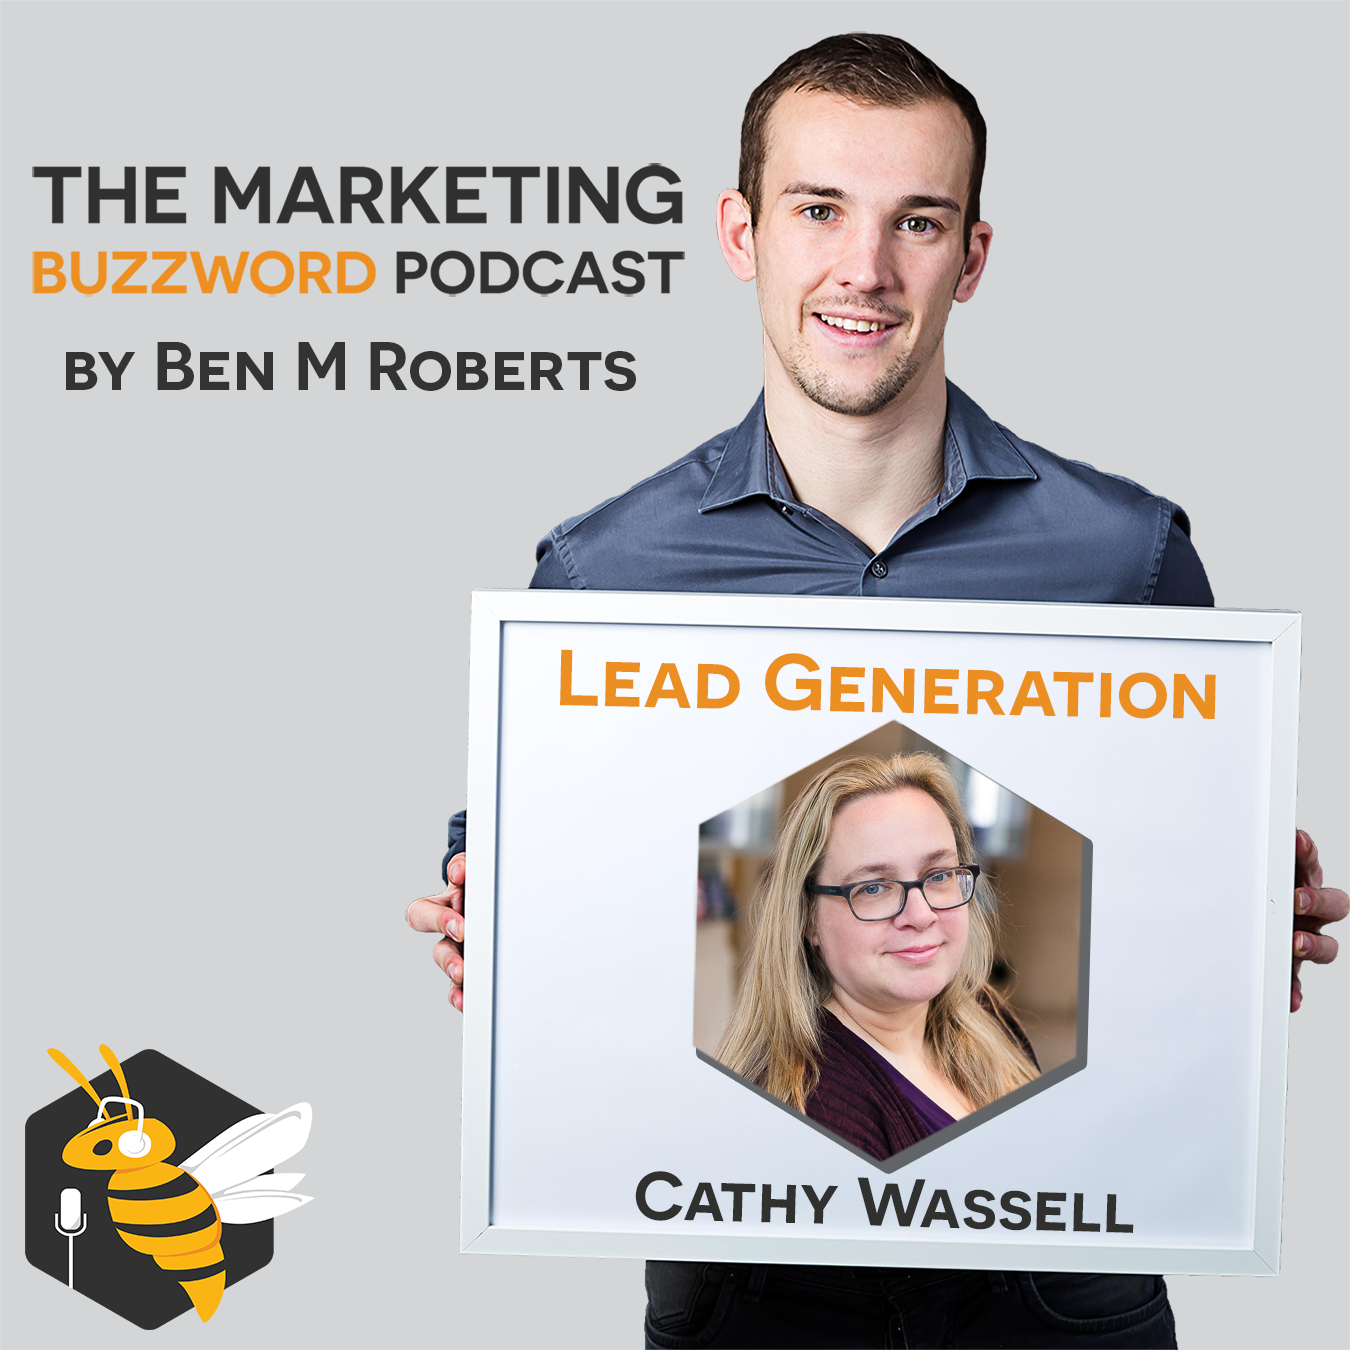 Lead Generation - How can we generate more leads without being spammy? What does the funnel even mean? Should we automate parts of our lead generation efforts?